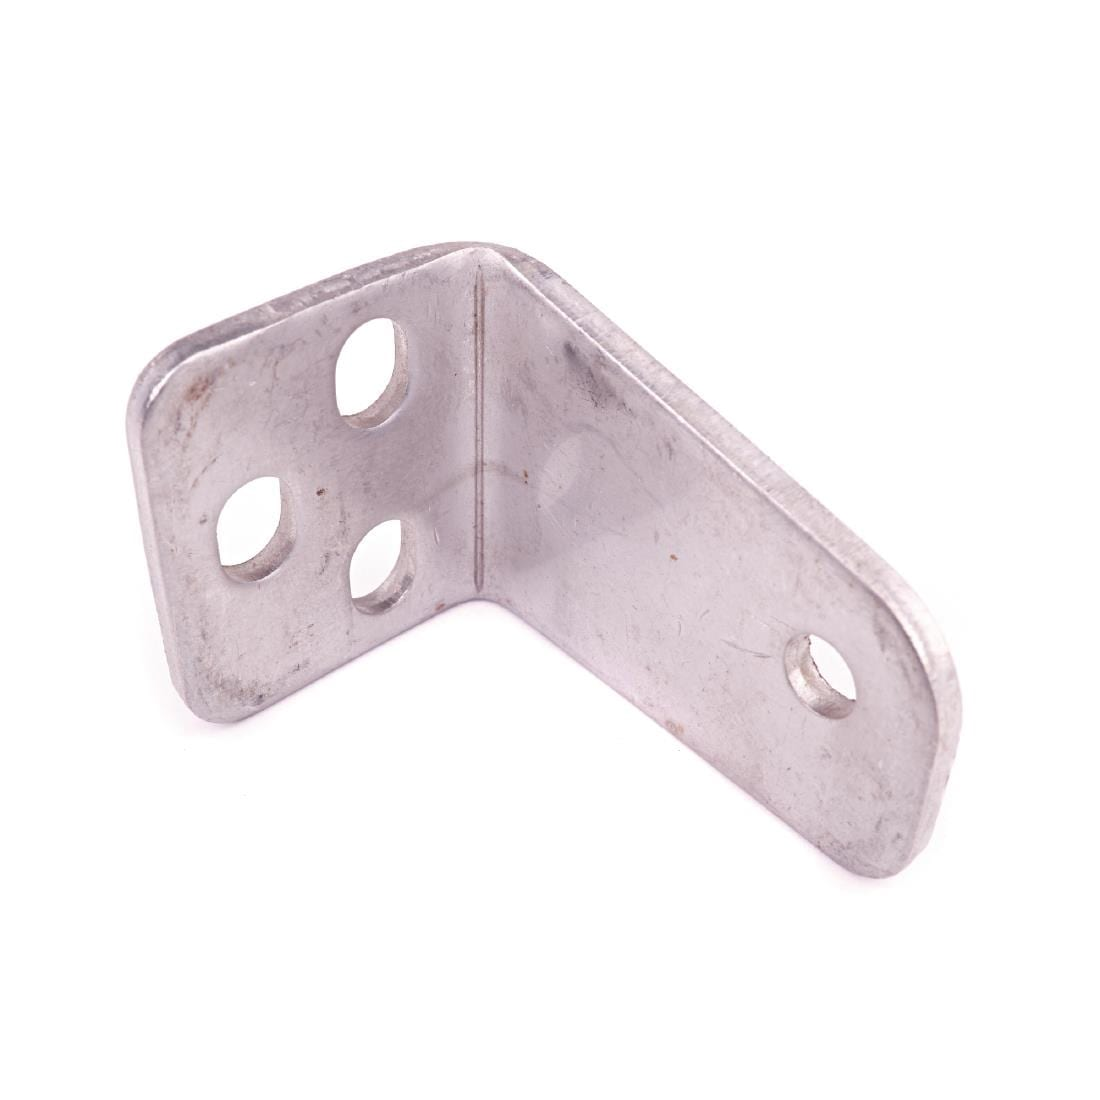 Replacement Down Hinge Right for CL108 CL109 CN402 CT425 G603 G604 G605 G606 G607 G622 U636